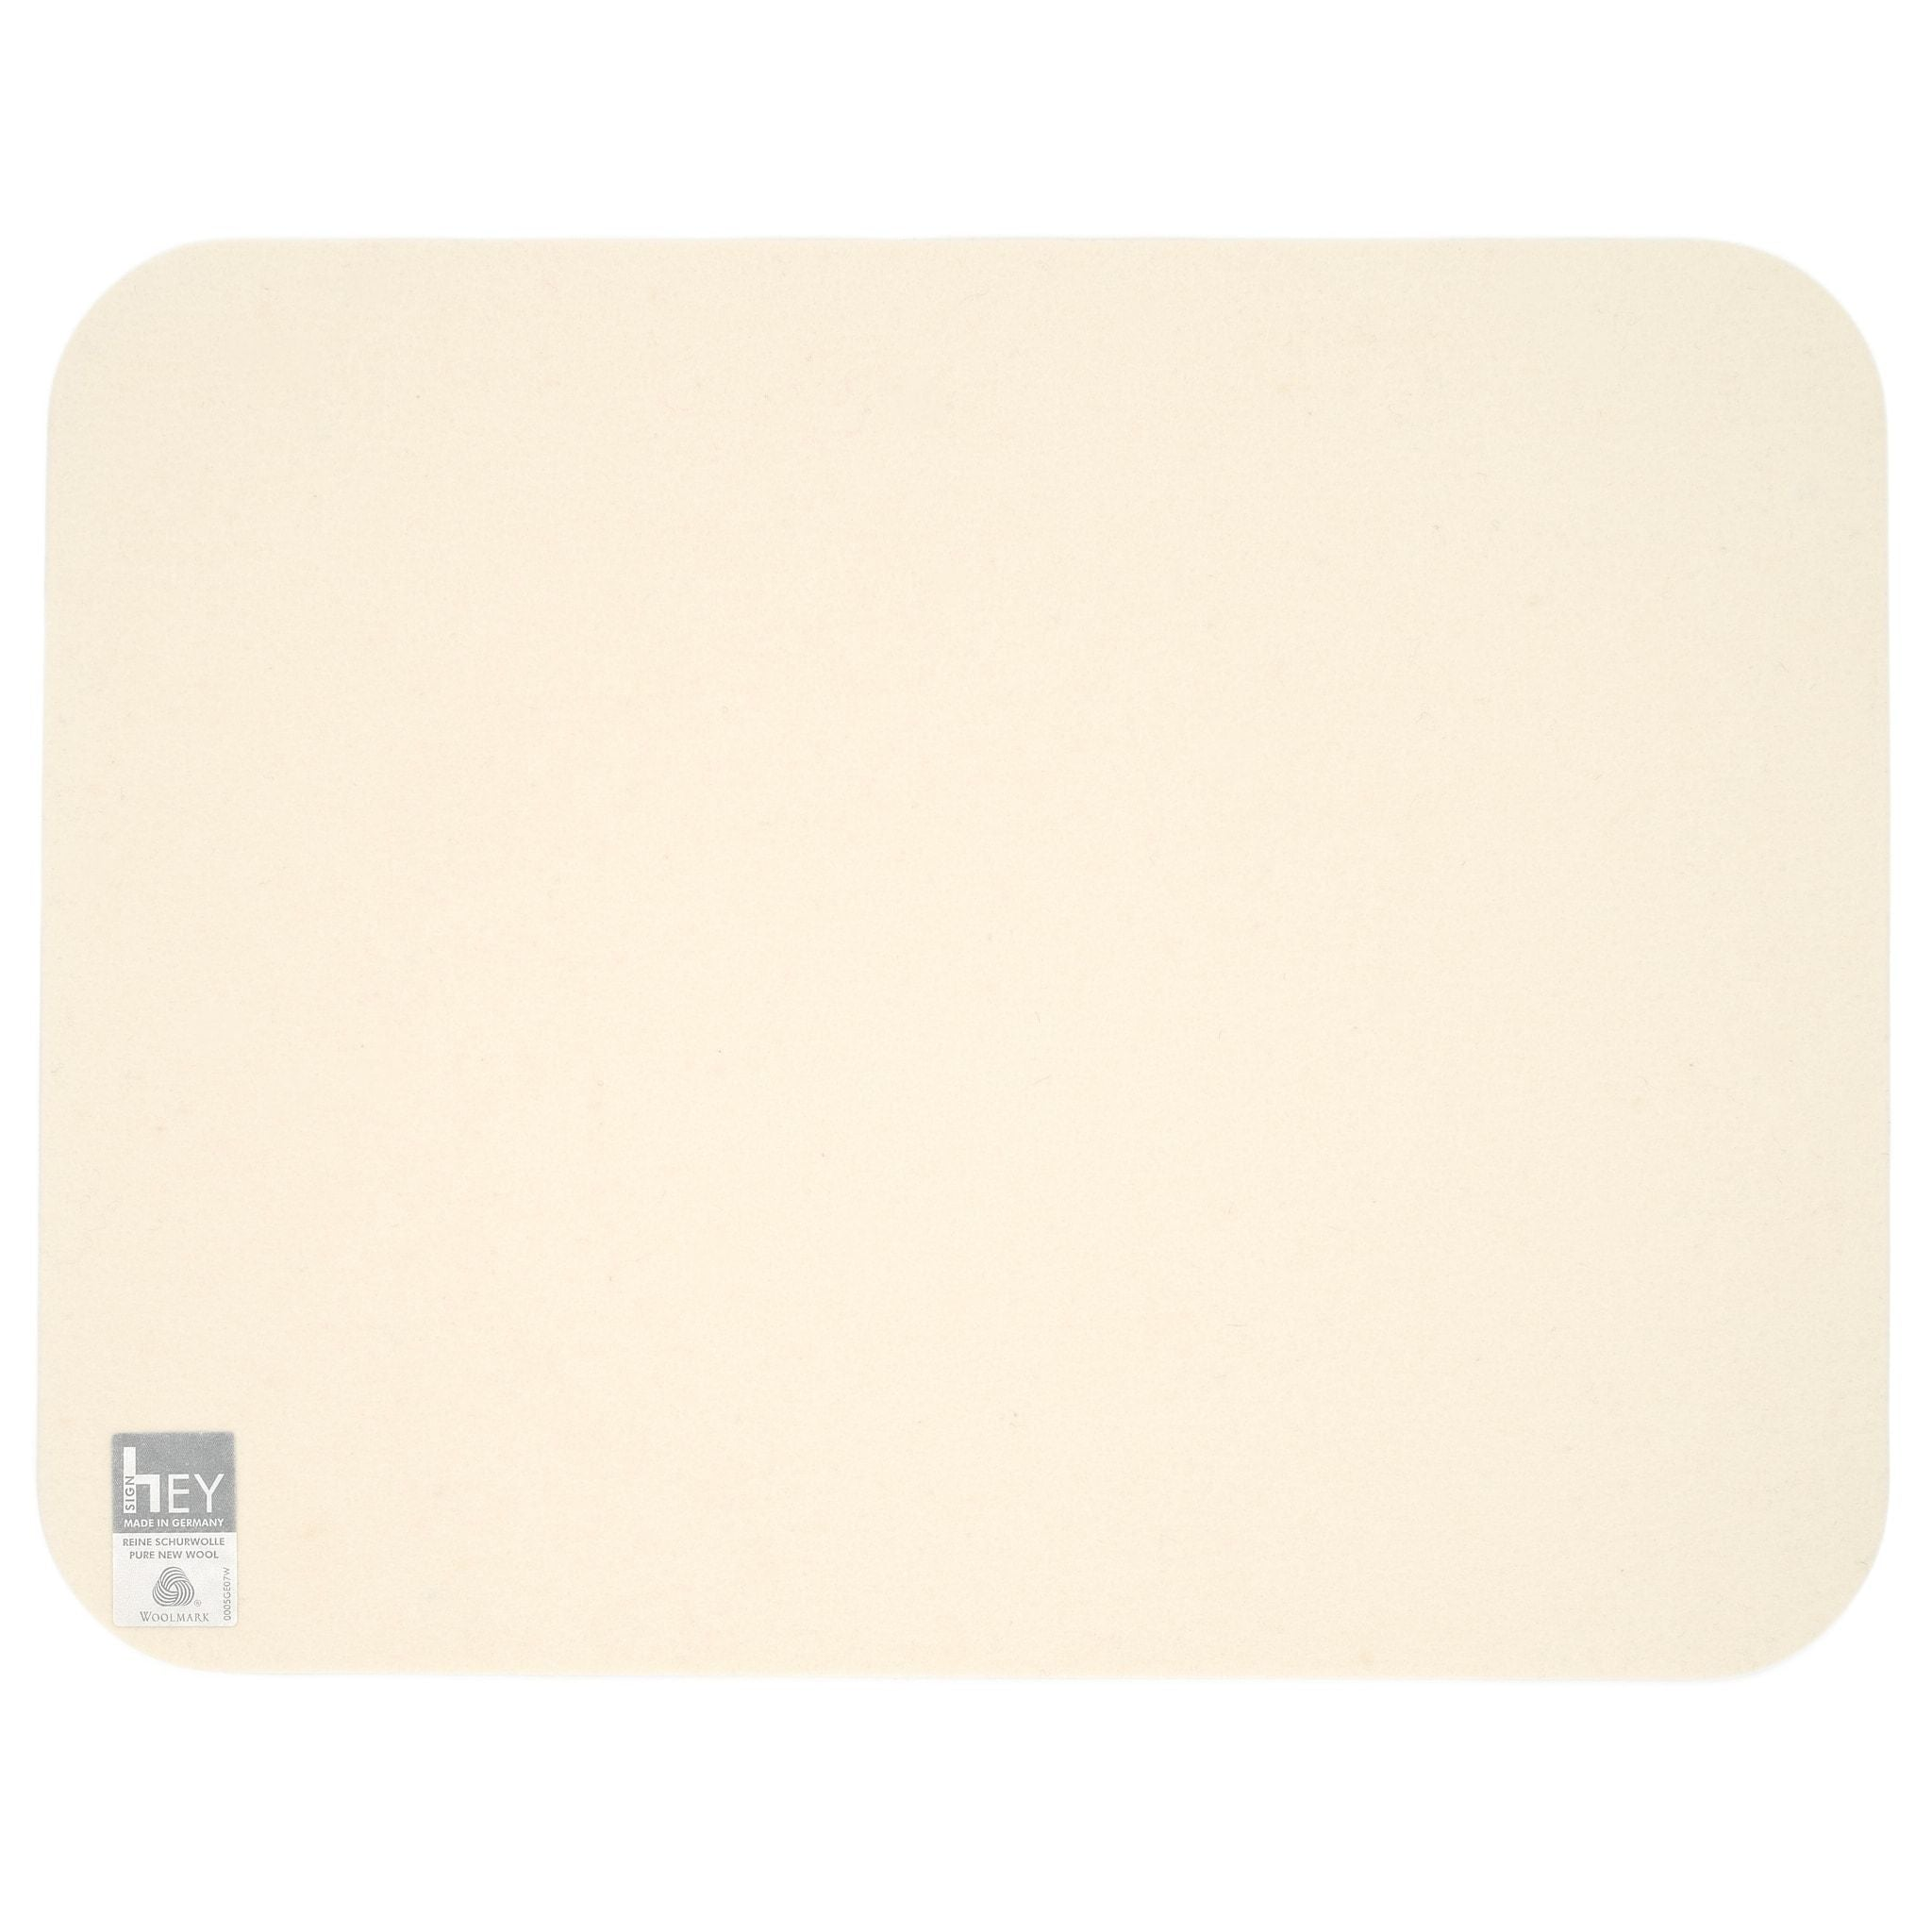 Rectangular Felt Placemat in White by Hey-Sign 300134503 looking at Back